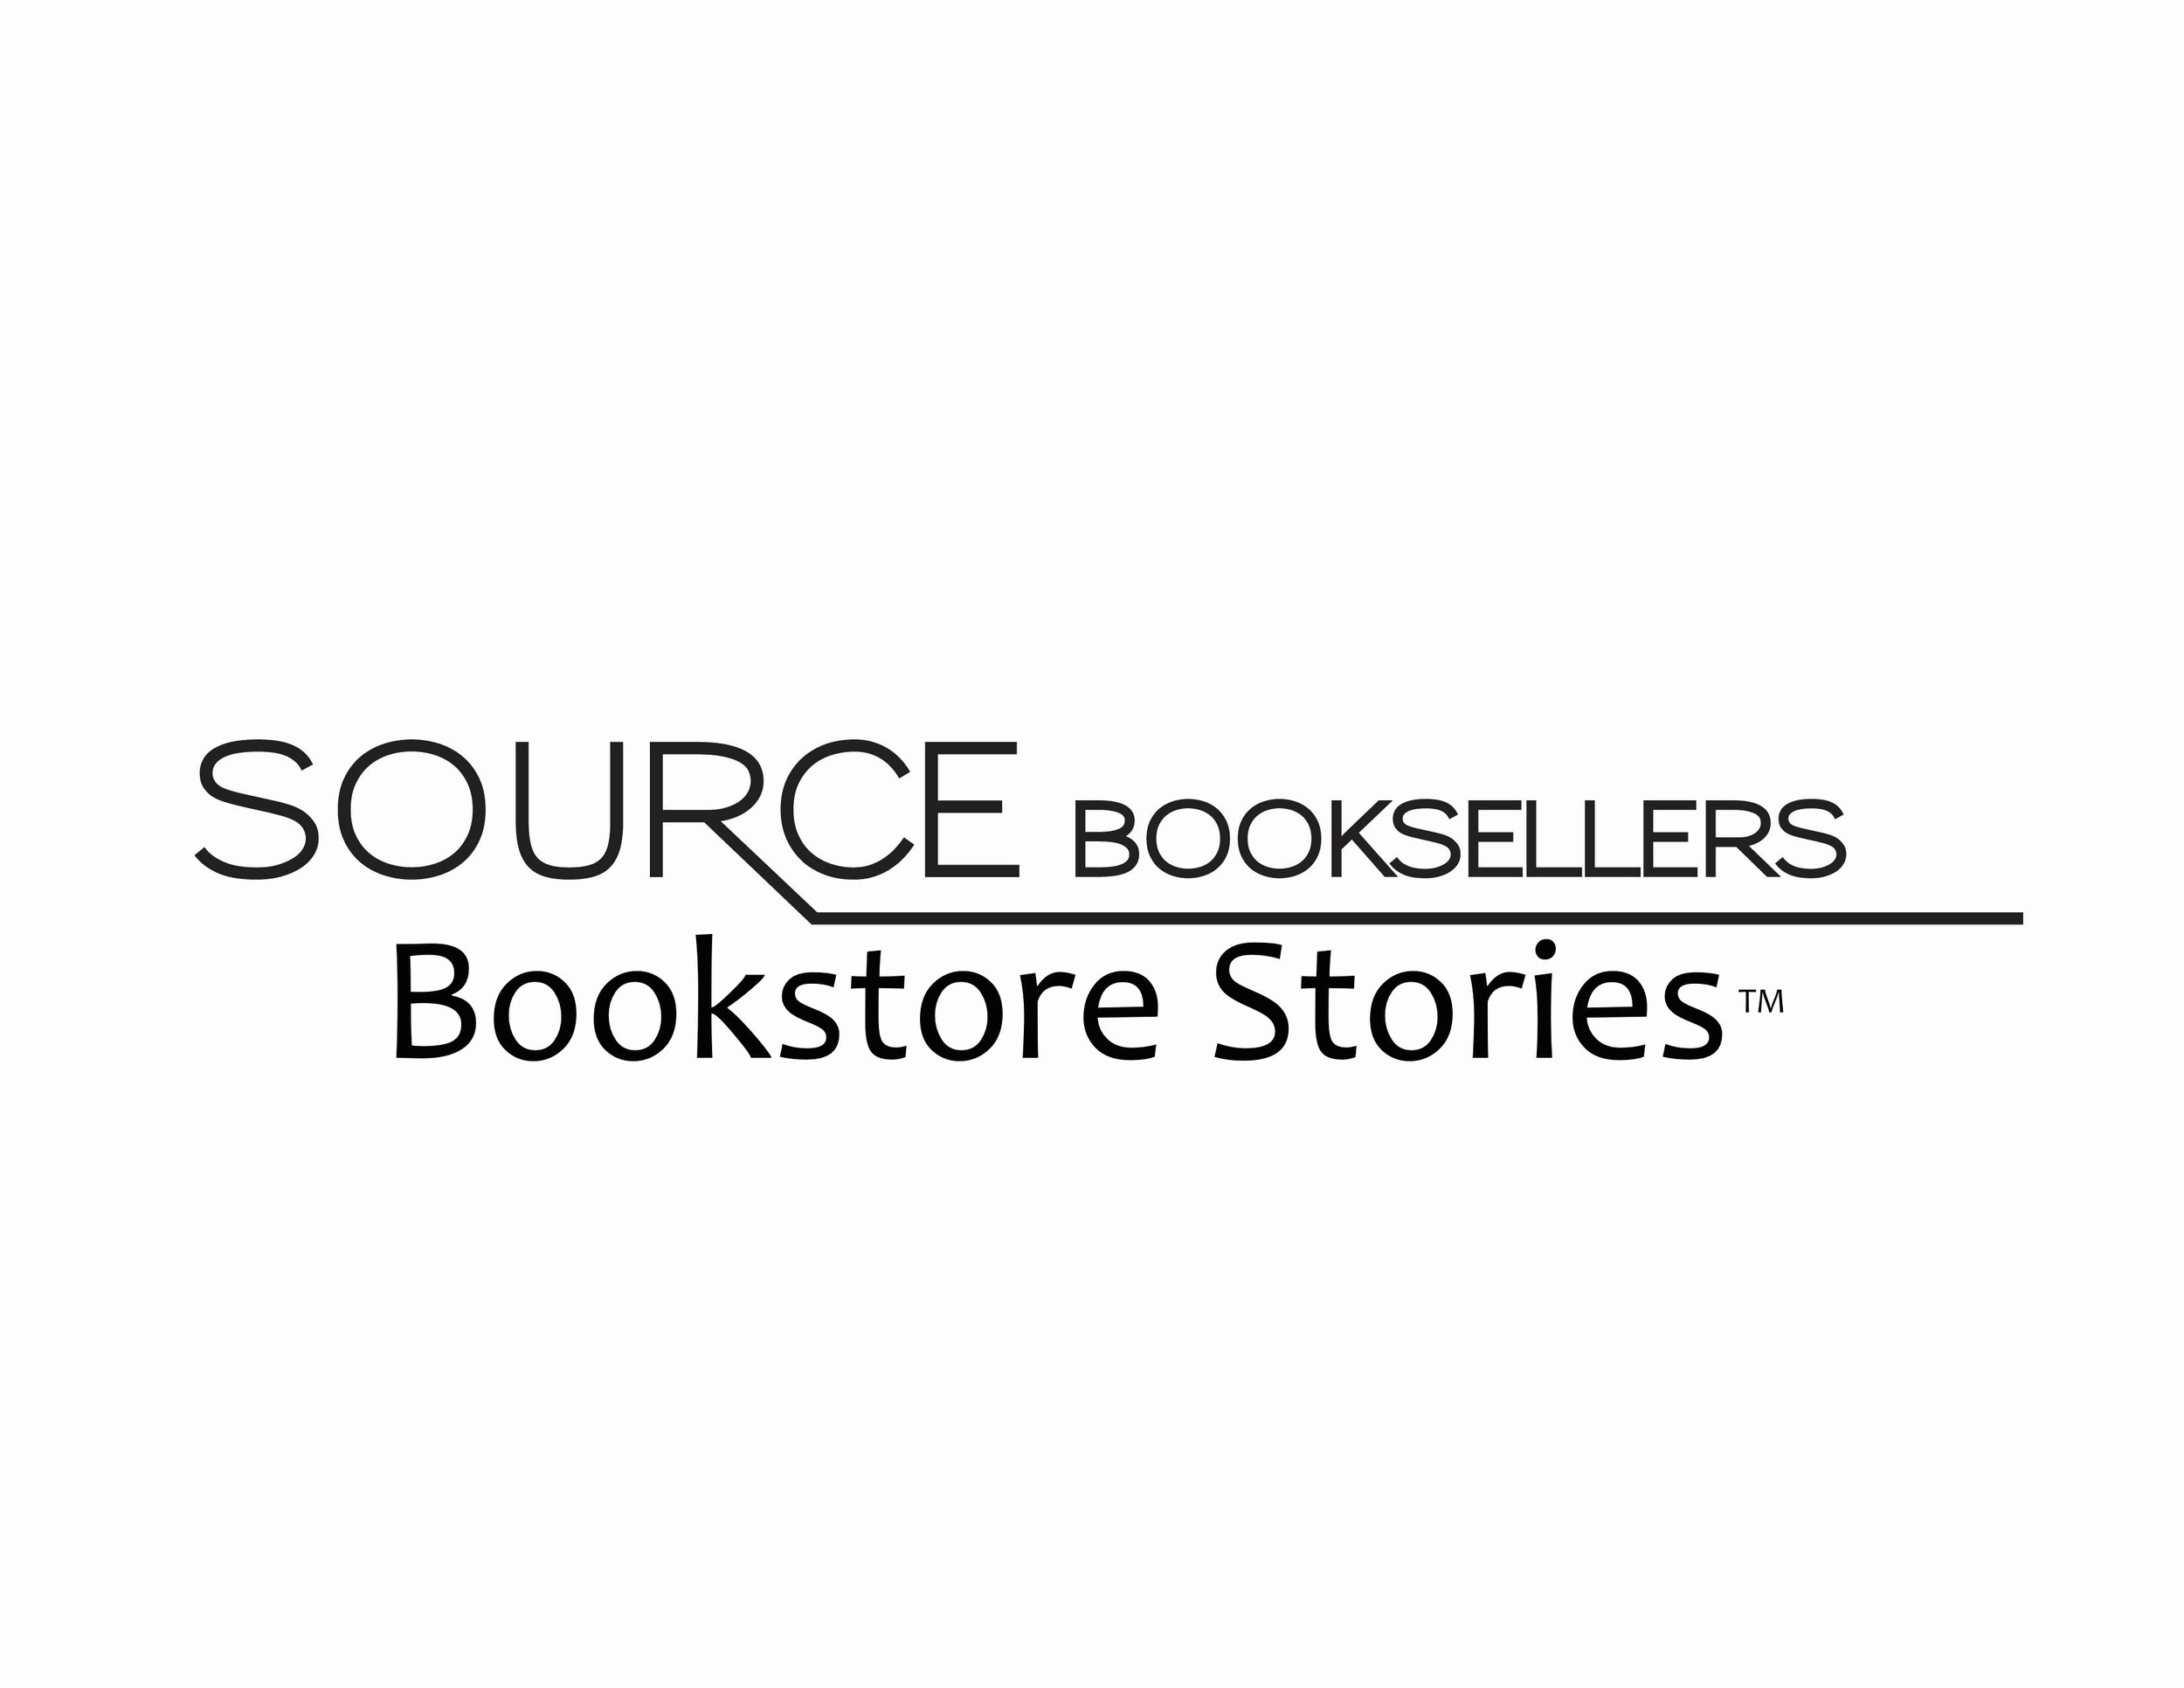 Bookstore Stories is a storytelling project exclusive to Source Booksellers originated on Independent Bookstore Day 2015.